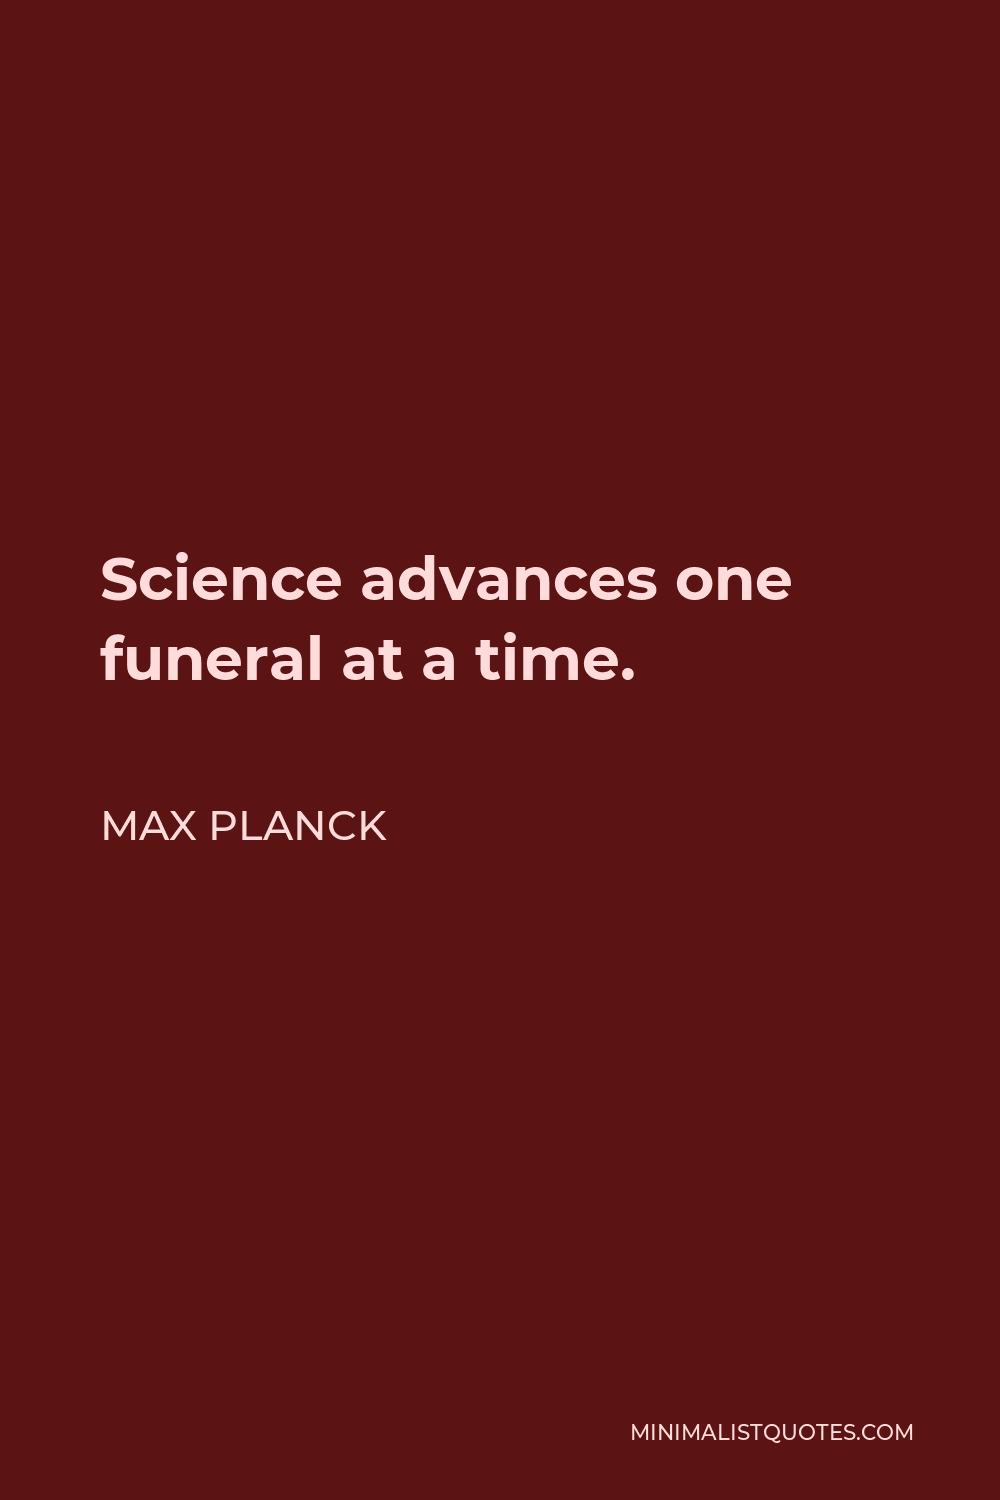 Max Planck Quote - Science advances one funeral at a time.